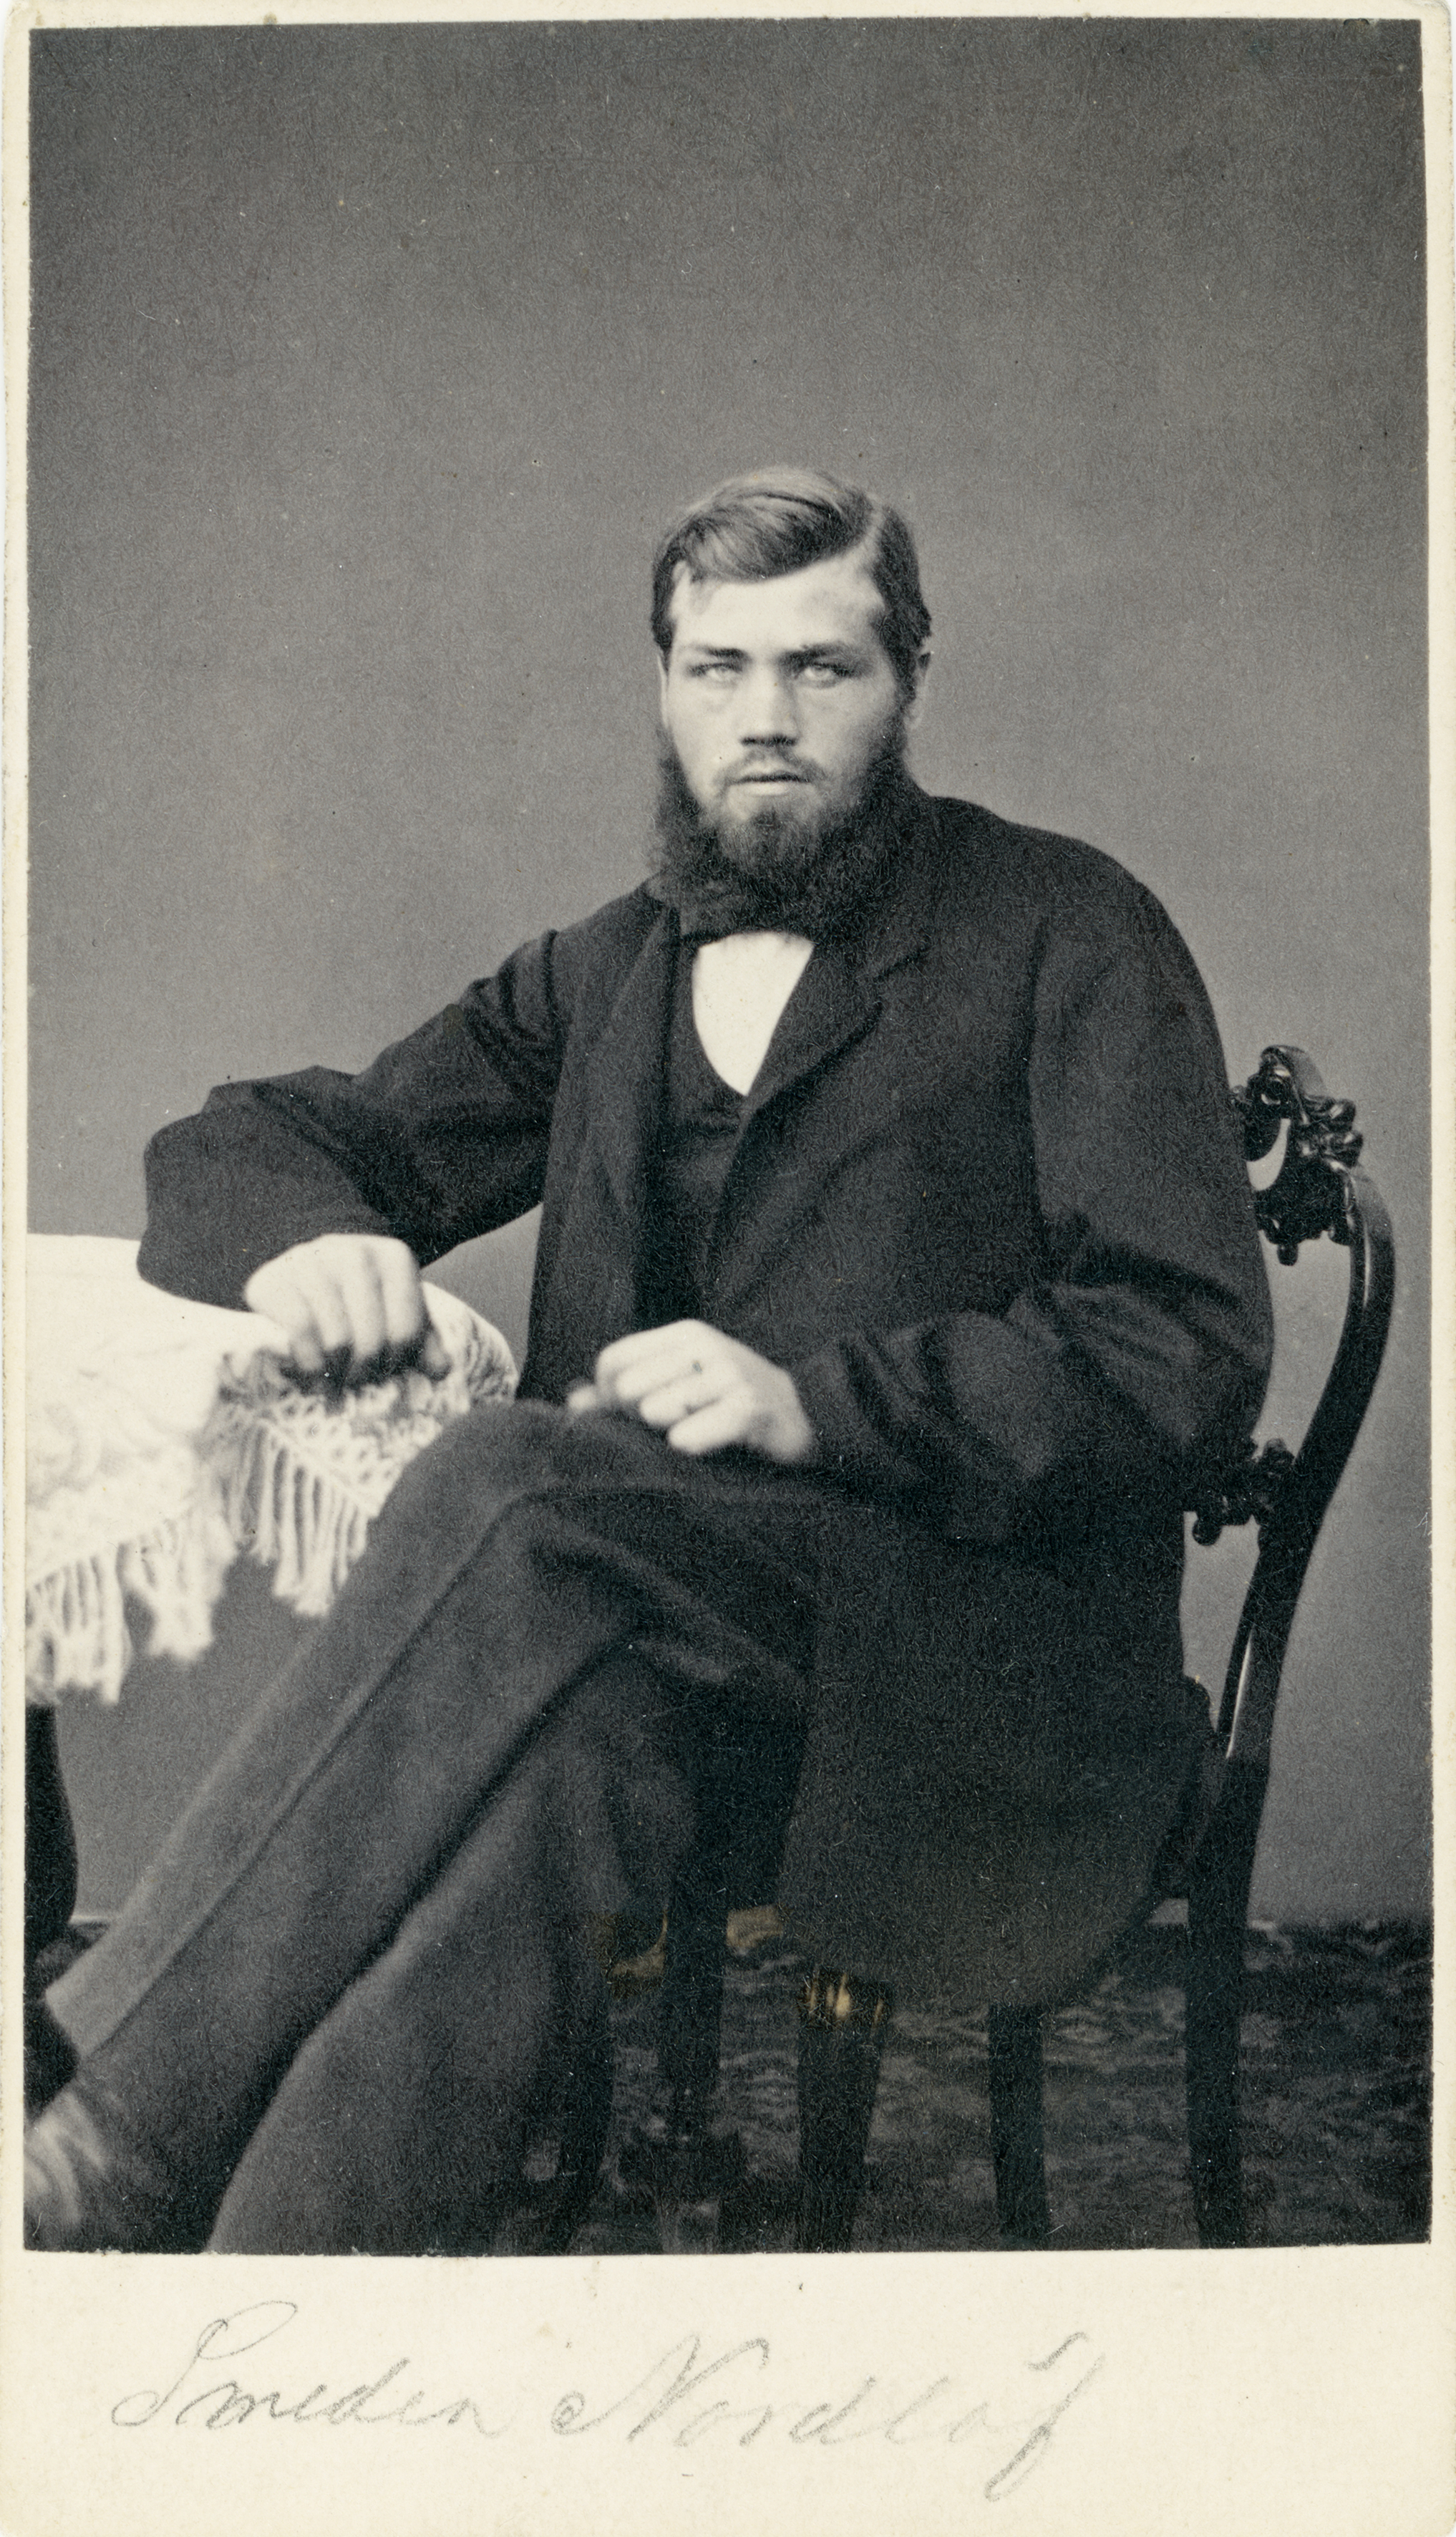 - Per Nordlöw b. 1845, smith with his own business in Enånger. Built the first power plant in Hälsingland, Bäckeboström. The company produced tools for forestry. Eu Åke Nordlöw. The brother Eric Nordlöw in 1837, 5/9 1875, had photo studio in the